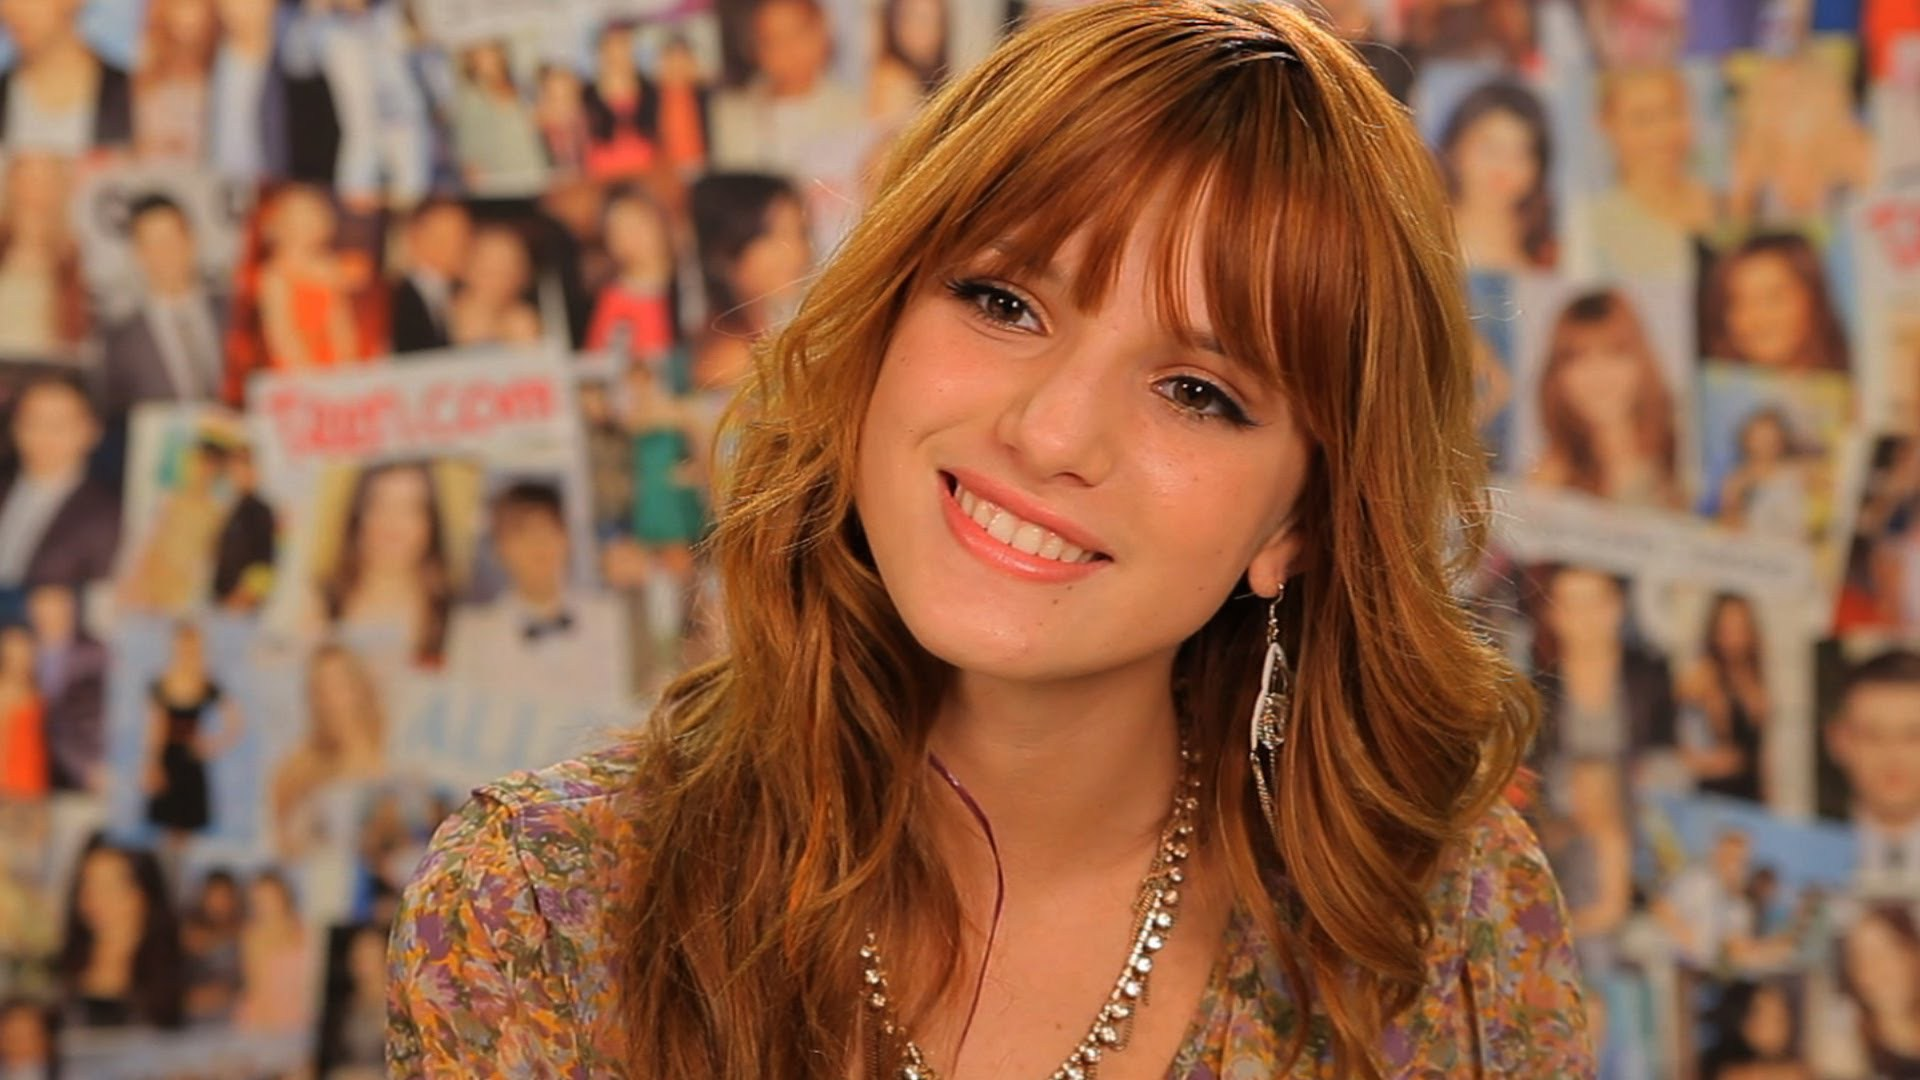 Bella Thorne Download Free Backgrounds Hd